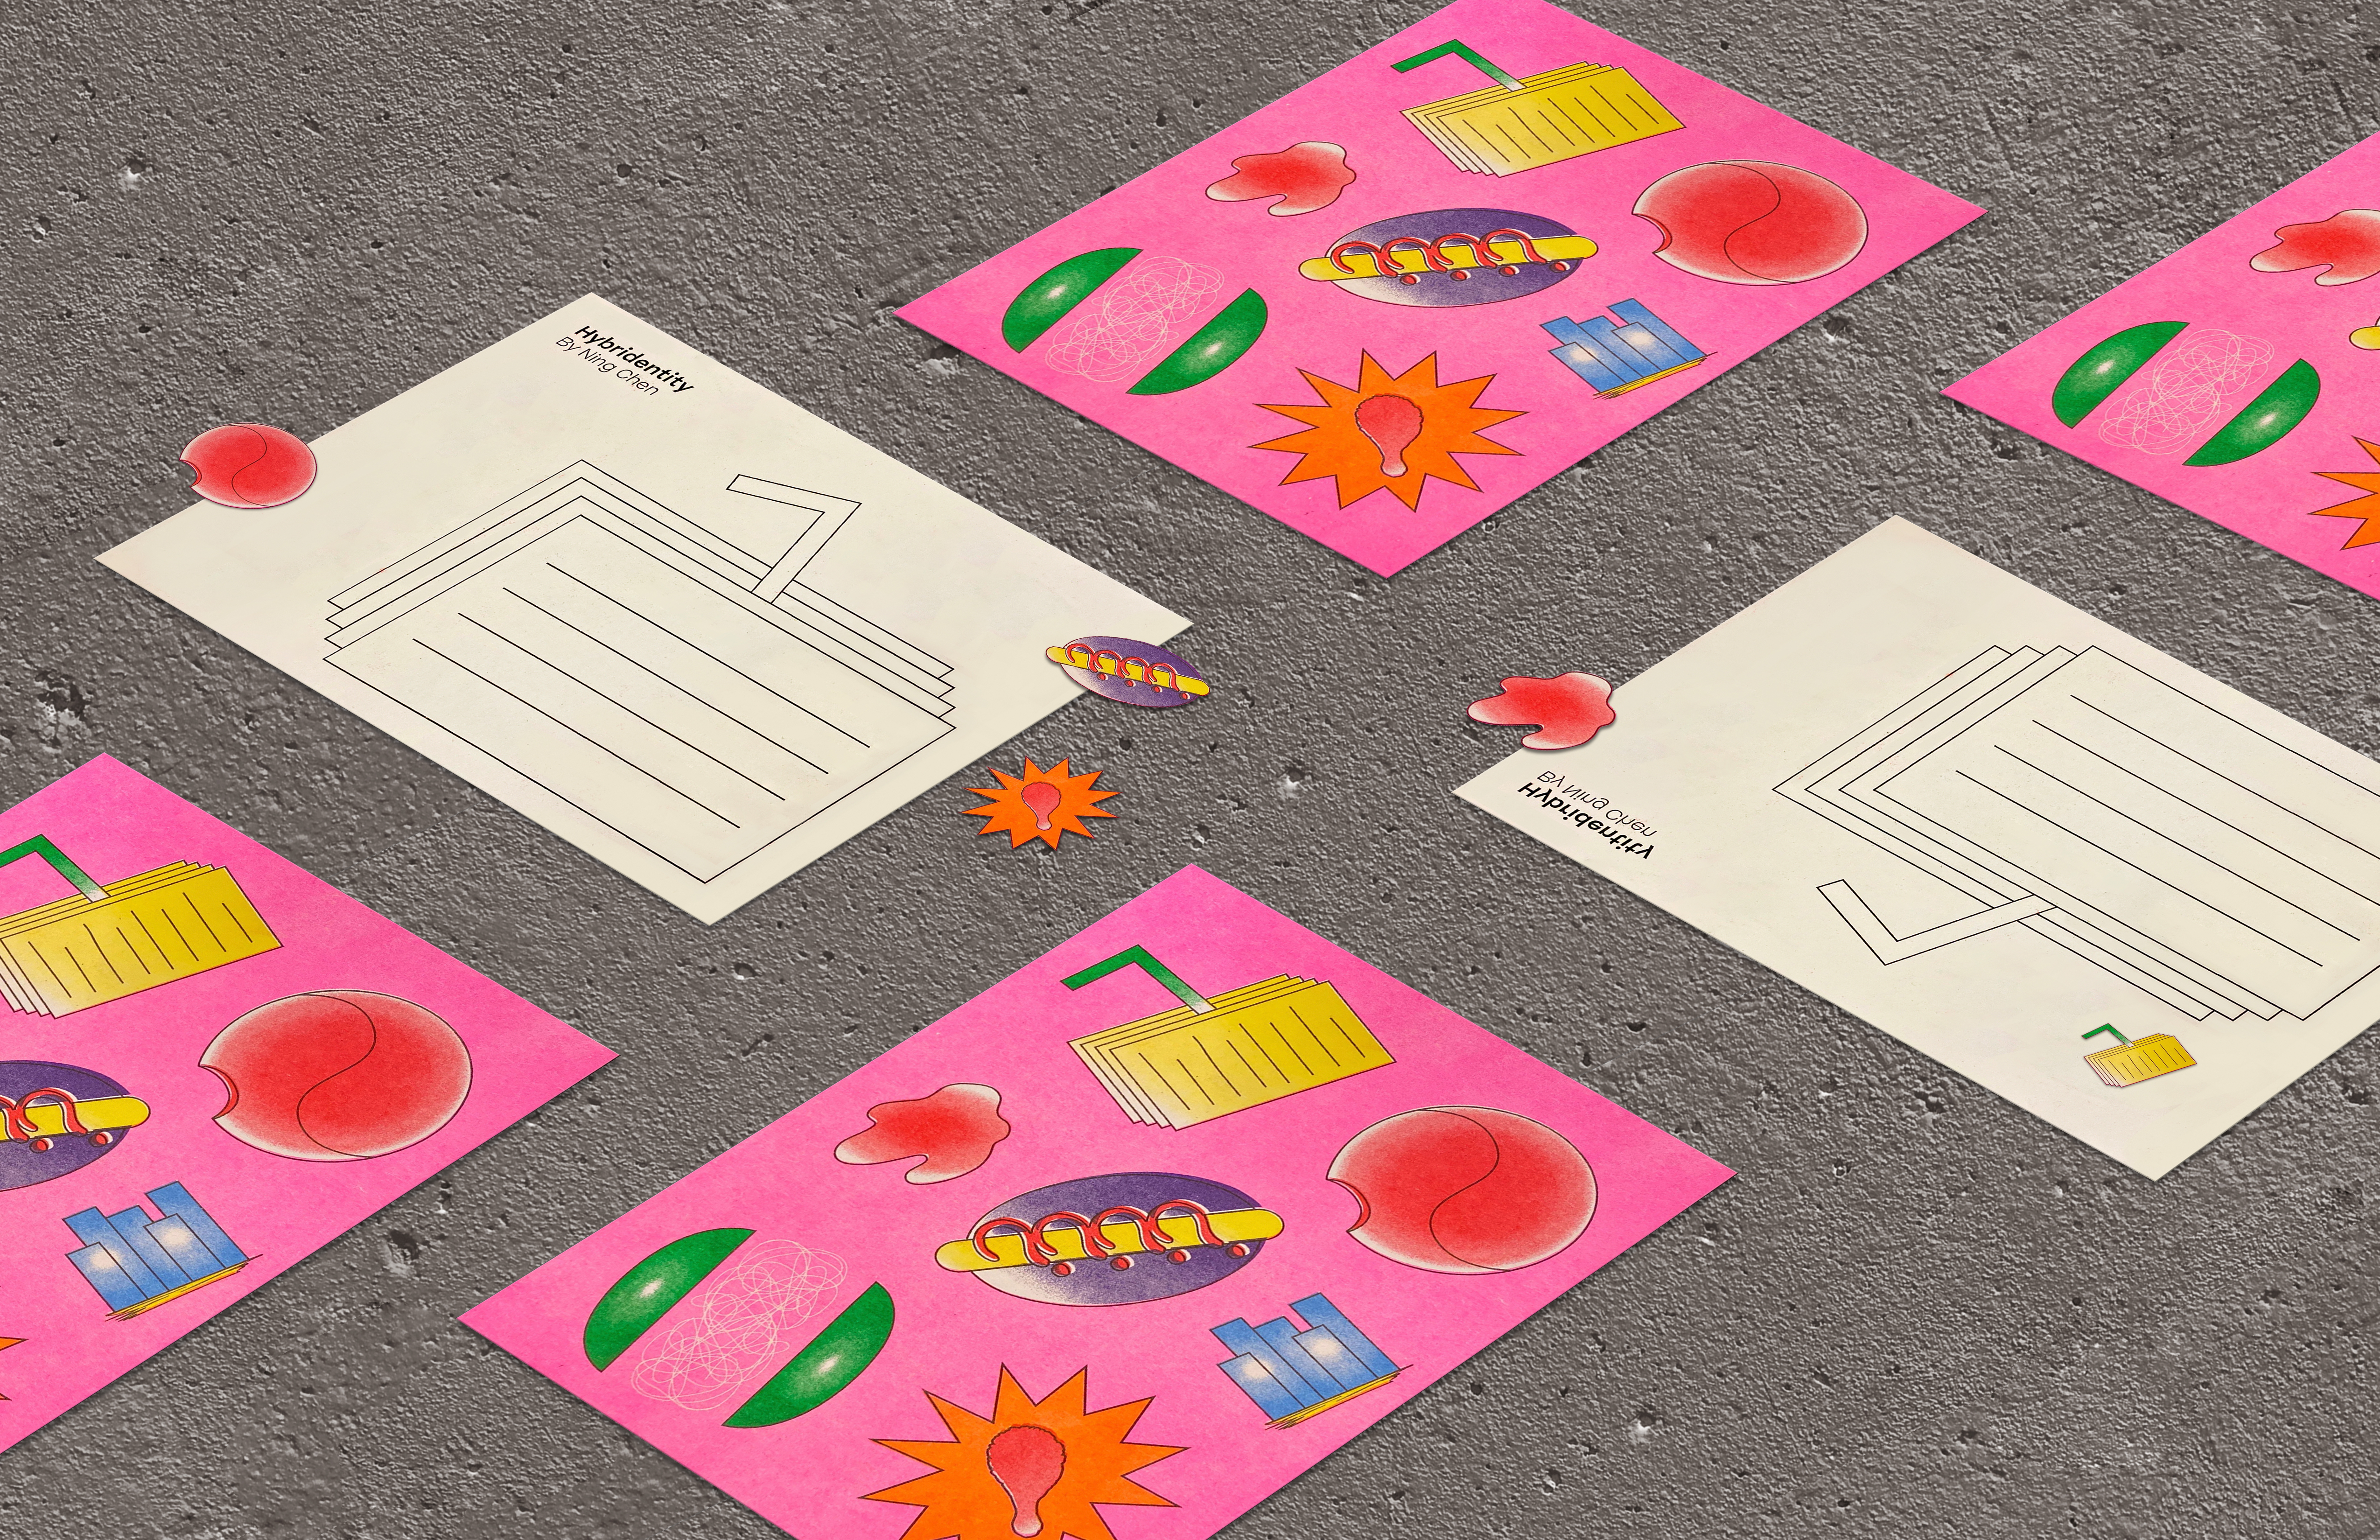 papers with artists design